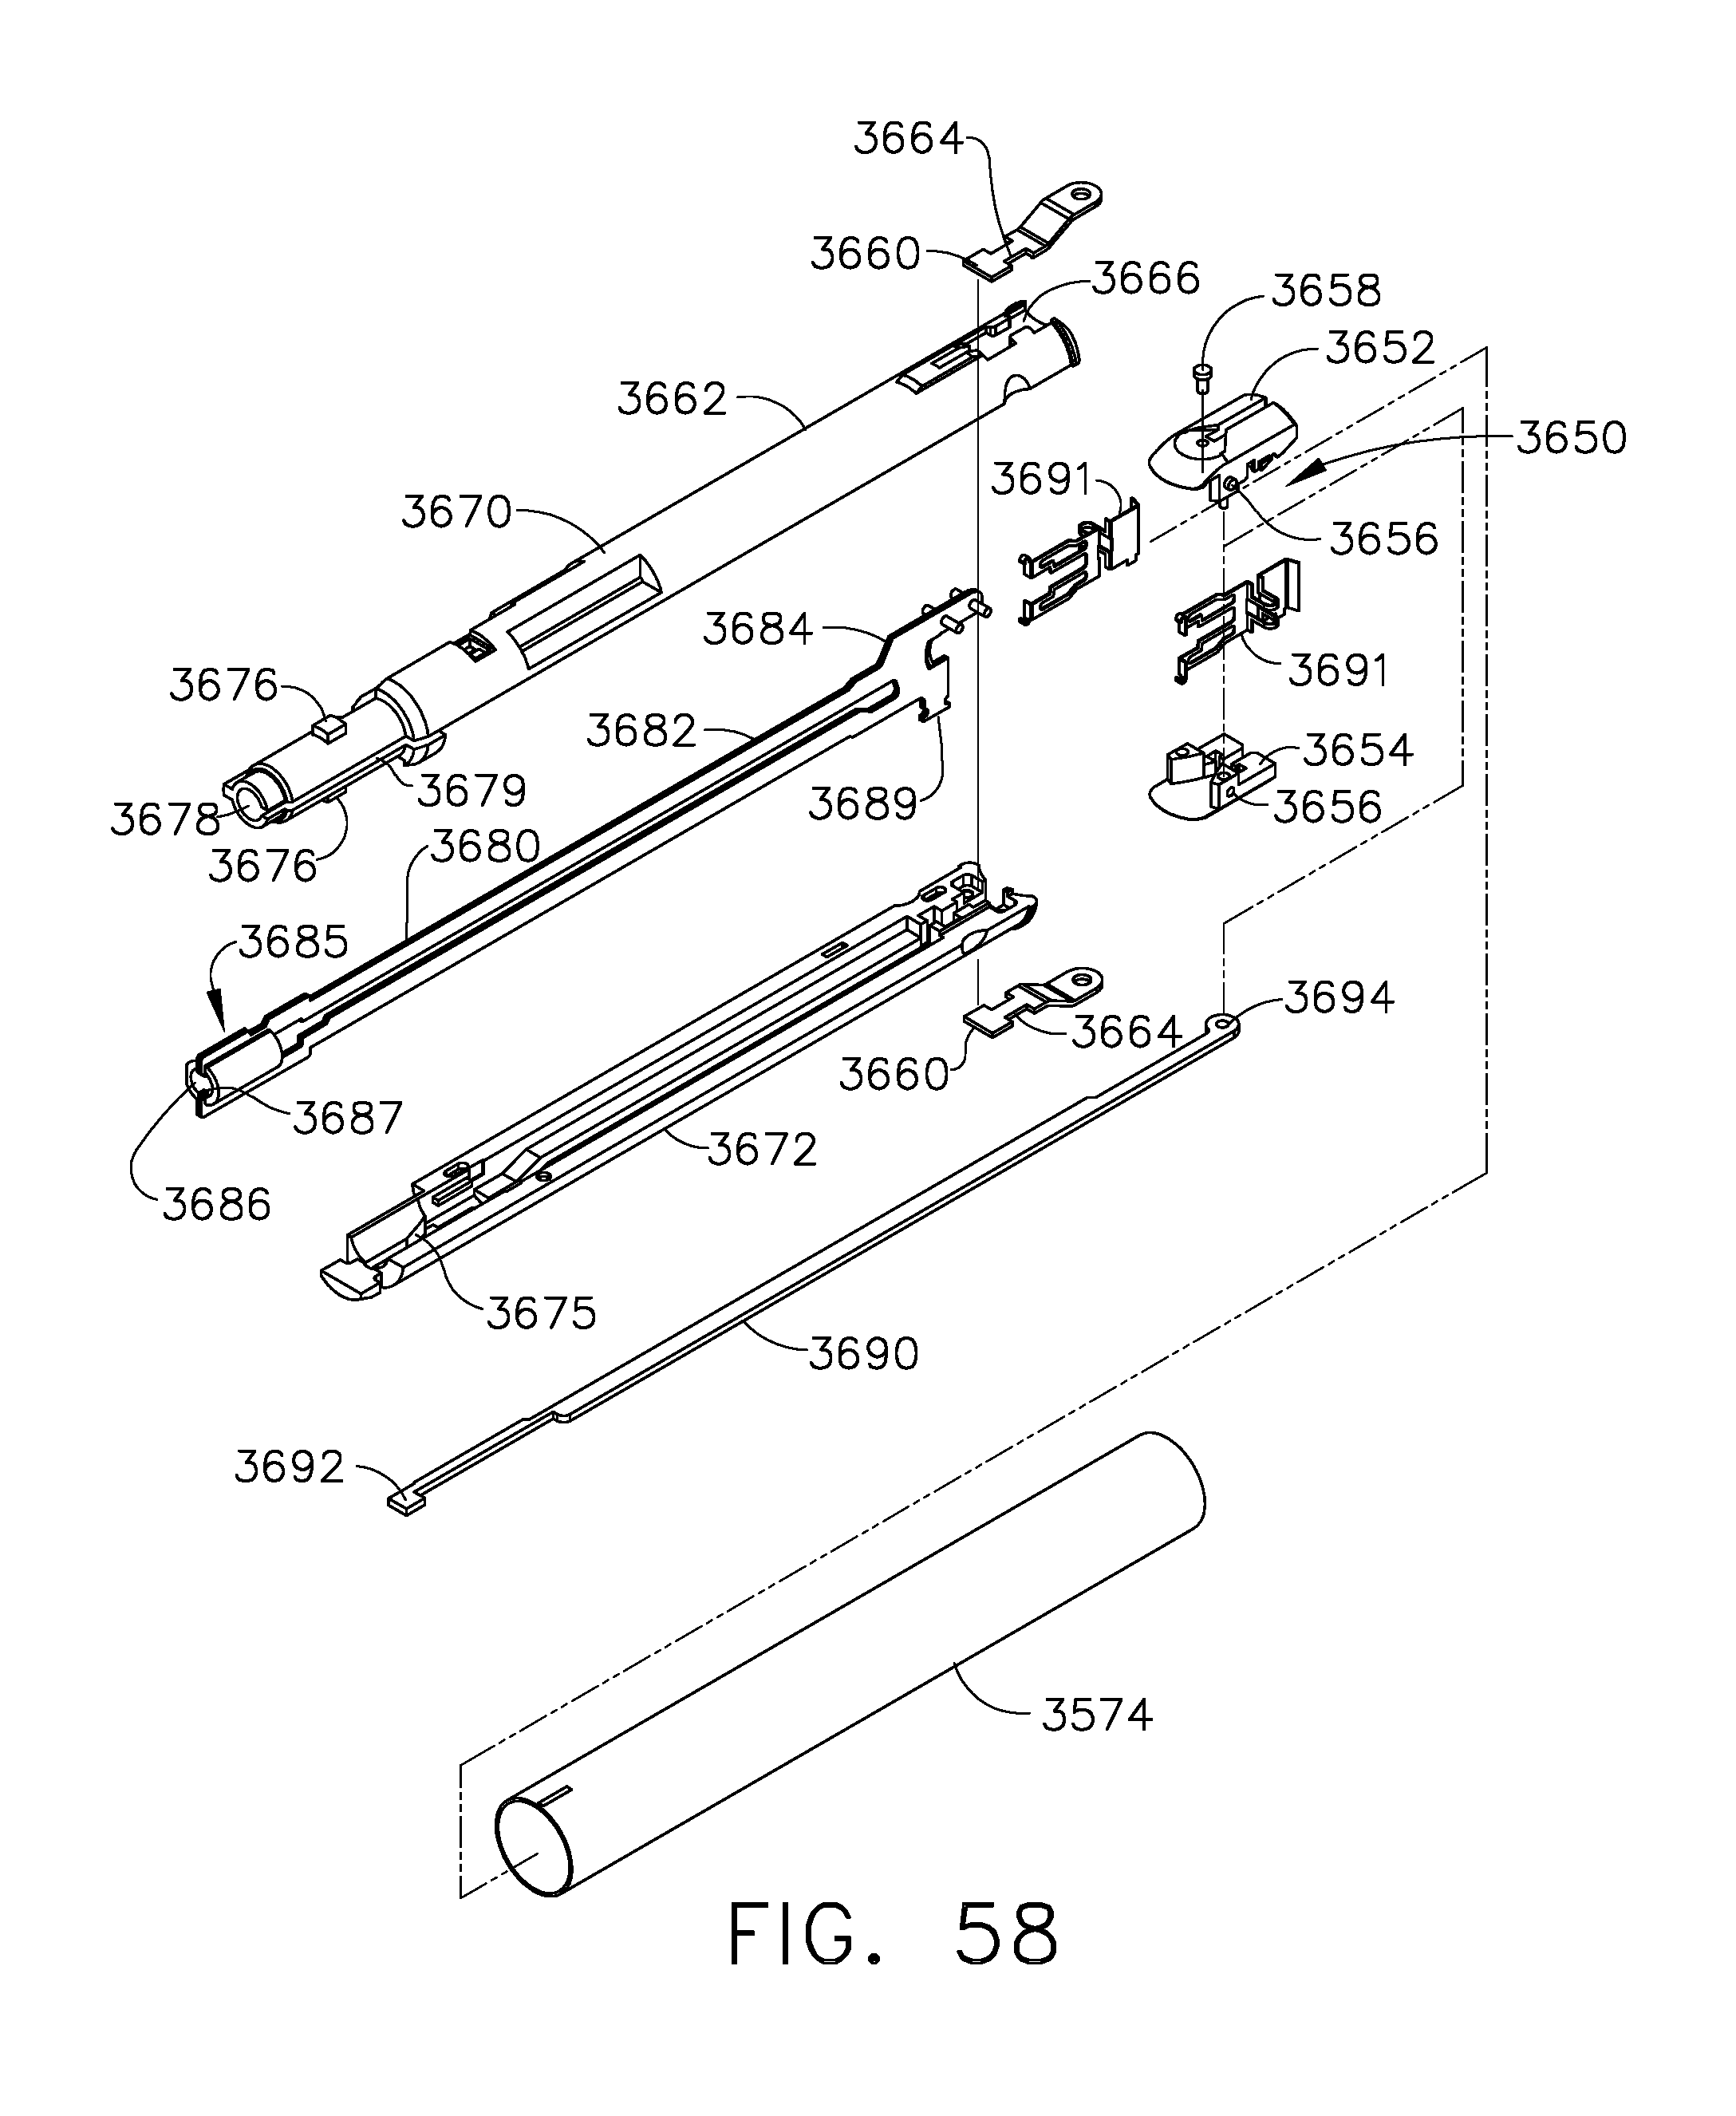 Us9775614b2 Surgical Stapling Instruments With Rotatable Staple Circuits Gt Use Neural Sensors To Build Smart Sensor Systems Using Deployment Arrangements Google Patents